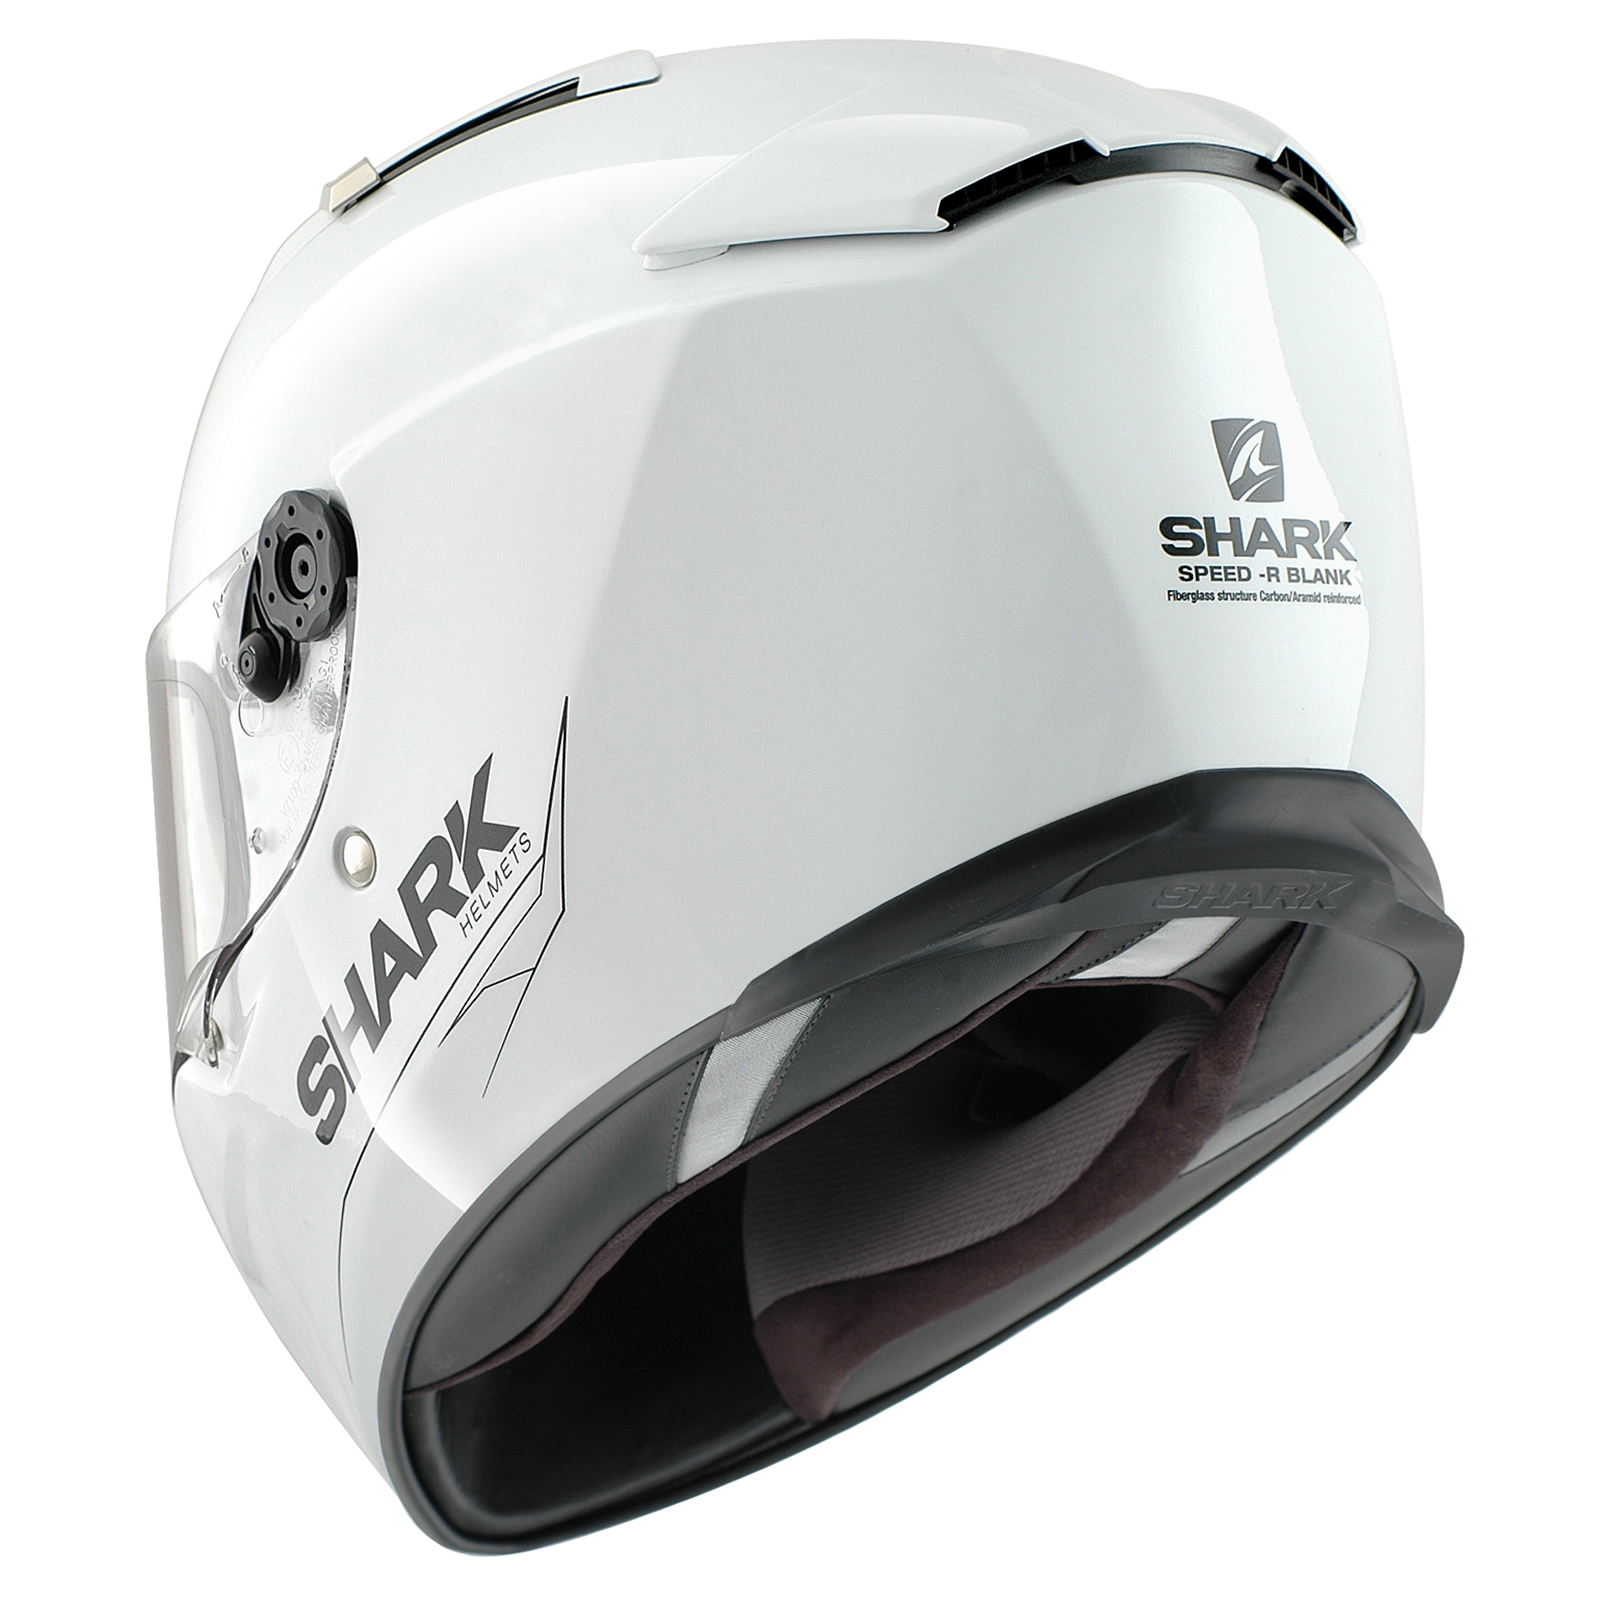 shark speed r blank motorbike race touring bike motorcycle helmet ghostbikes ebay. Black Bedroom Furniture Sets. Home Design Ideas